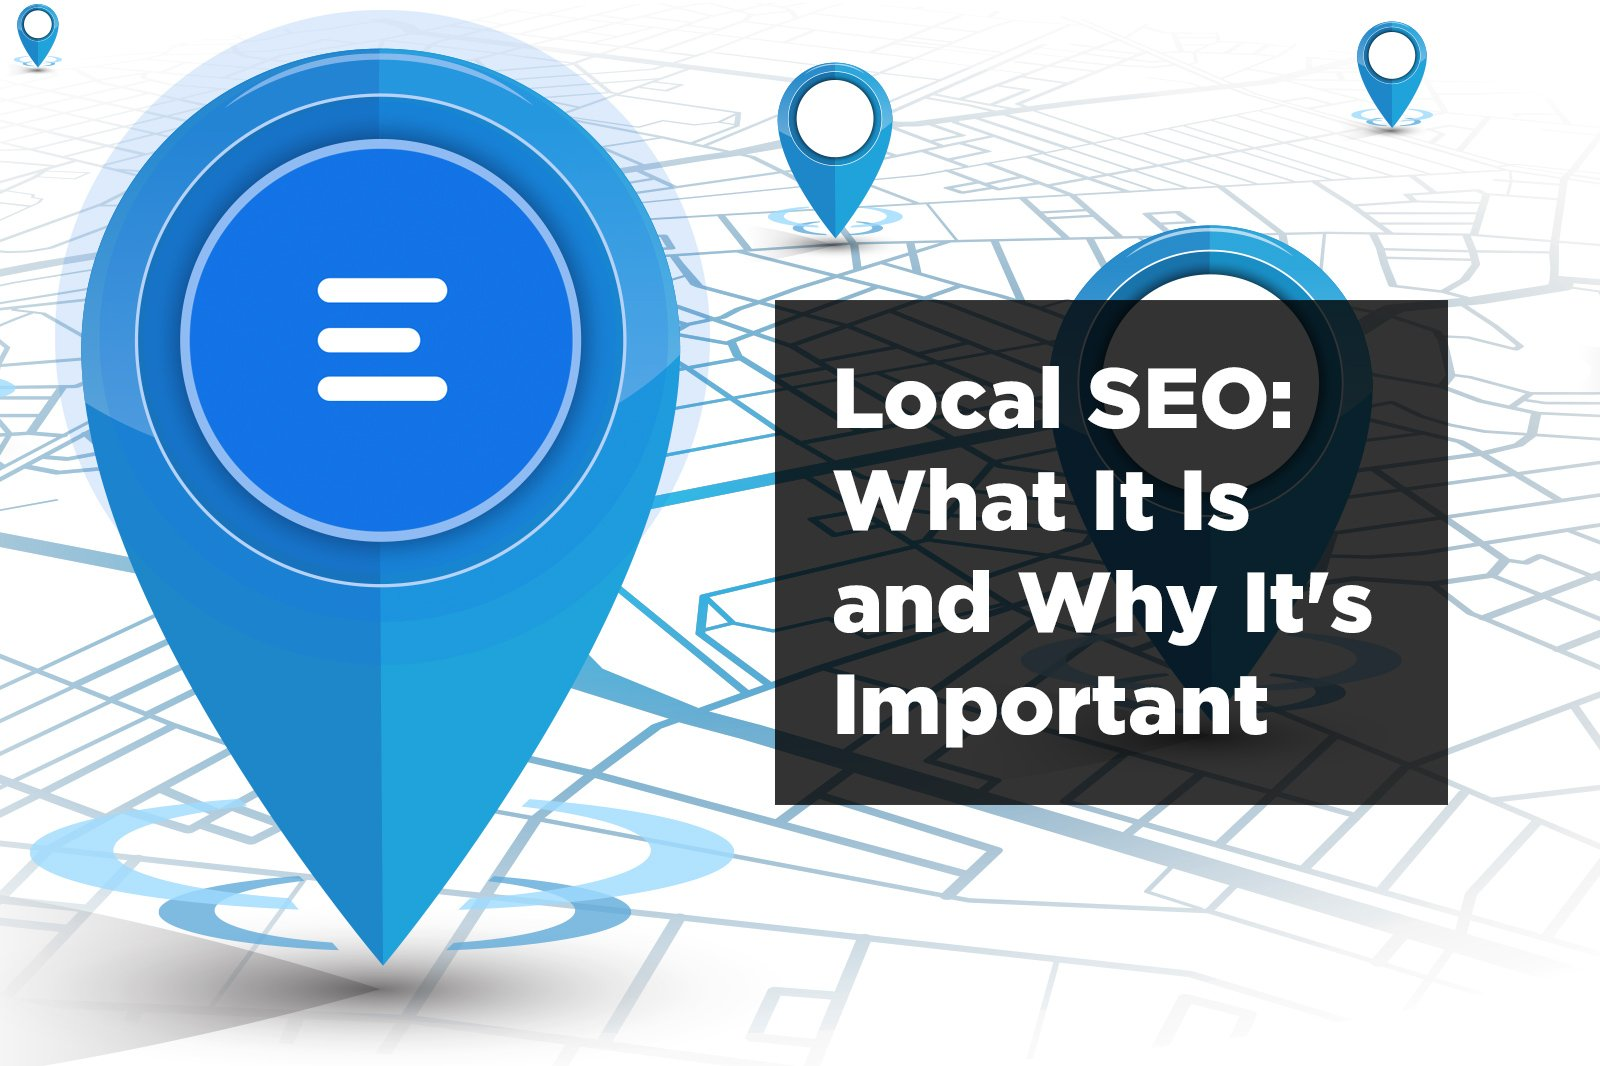 Local SEO: What It Is and Why It's Important for Small Businesses